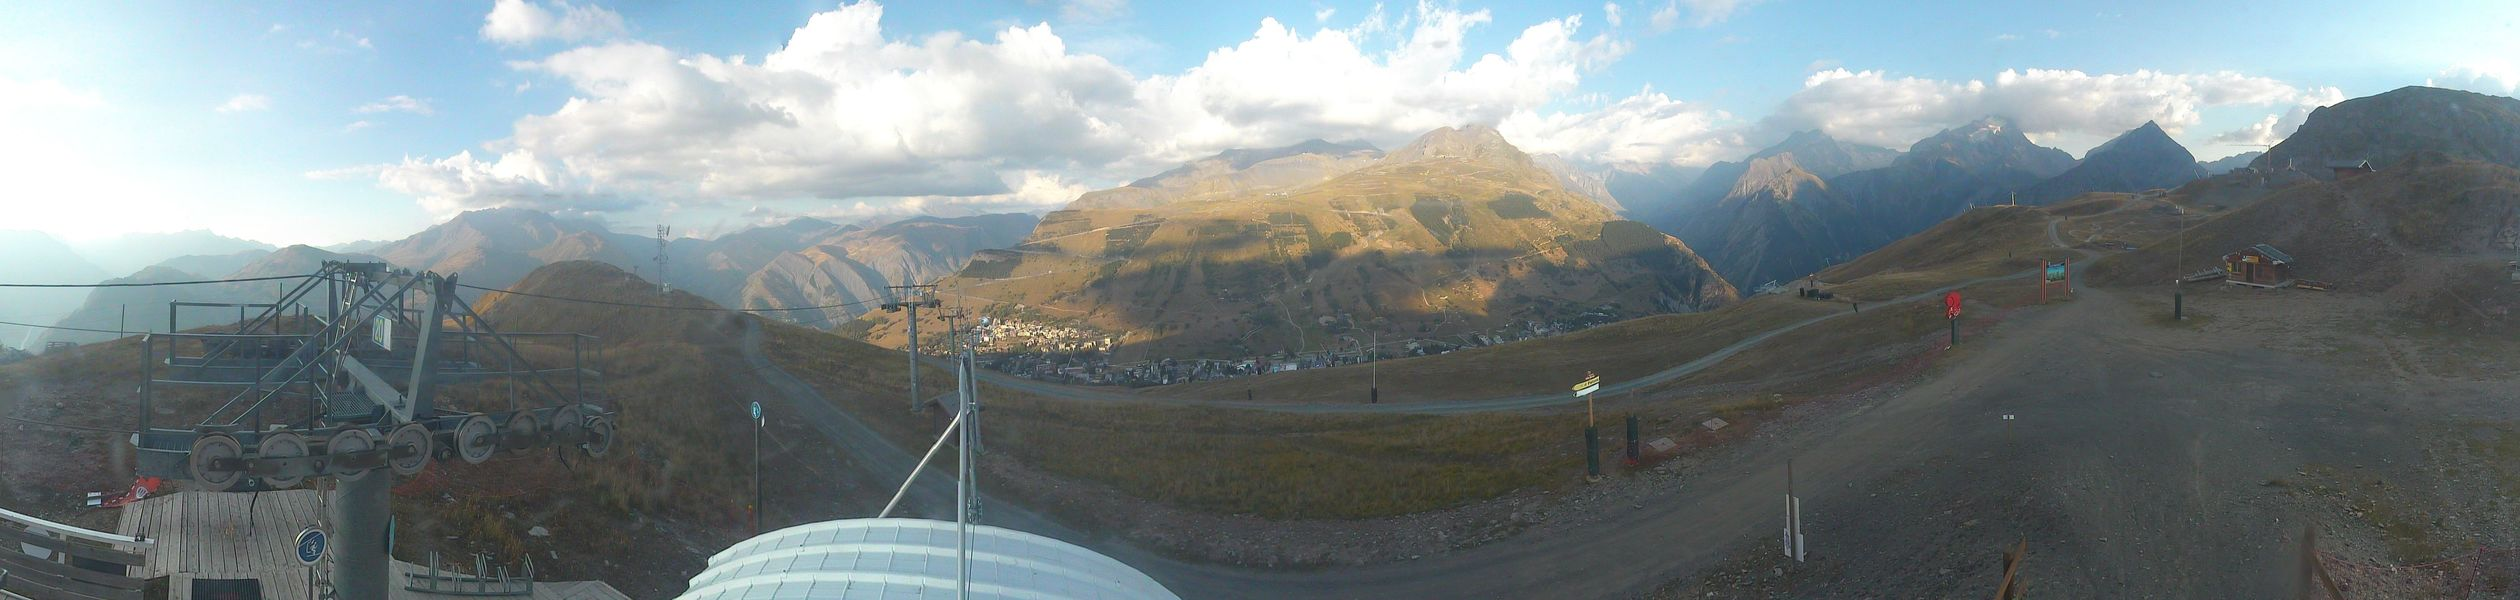 Webcam Les 2 Alpes